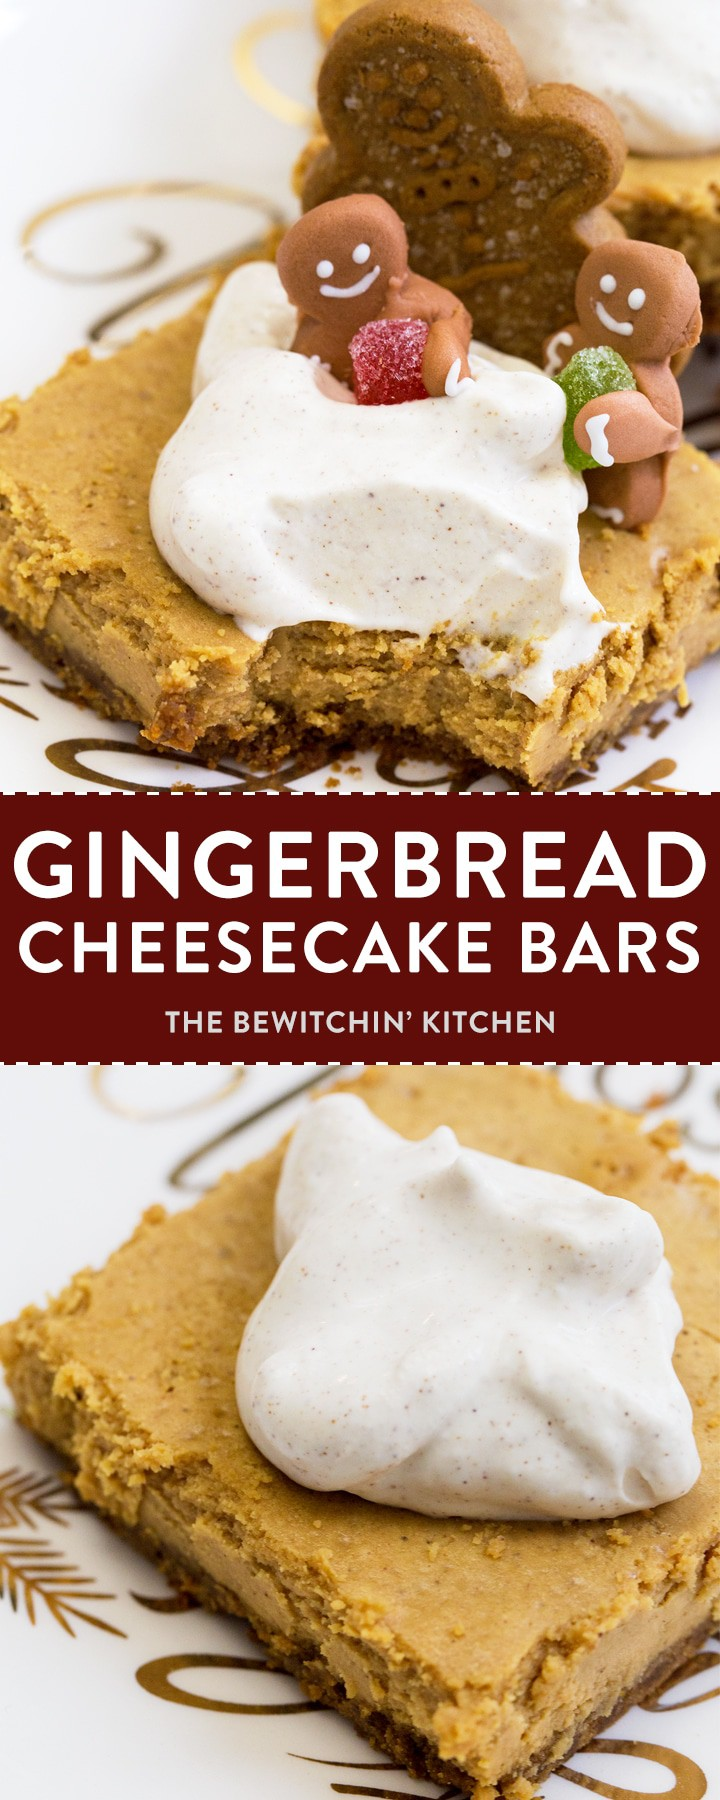 Gingerbread cheesecake bars are a simple holiday twist on a traditional cheesecake recipe. Whether you call them bars or squares just know that these are a perfect for easy Christmas Baking recipes. If you use them as Christmas baking gifts, your neighbors will love you!